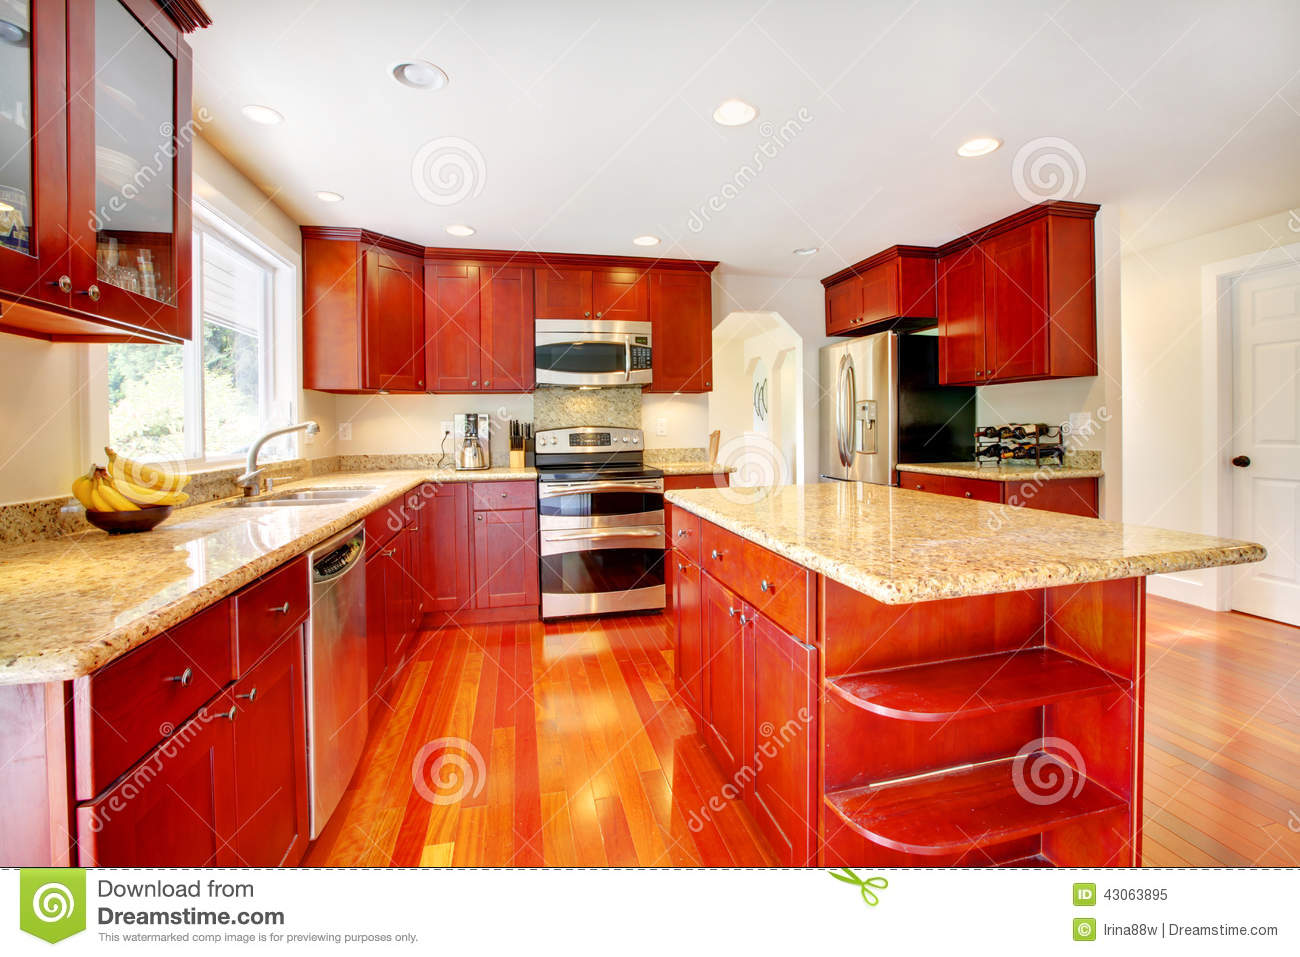 Bright red kitchen room with granite tops and kitchen island